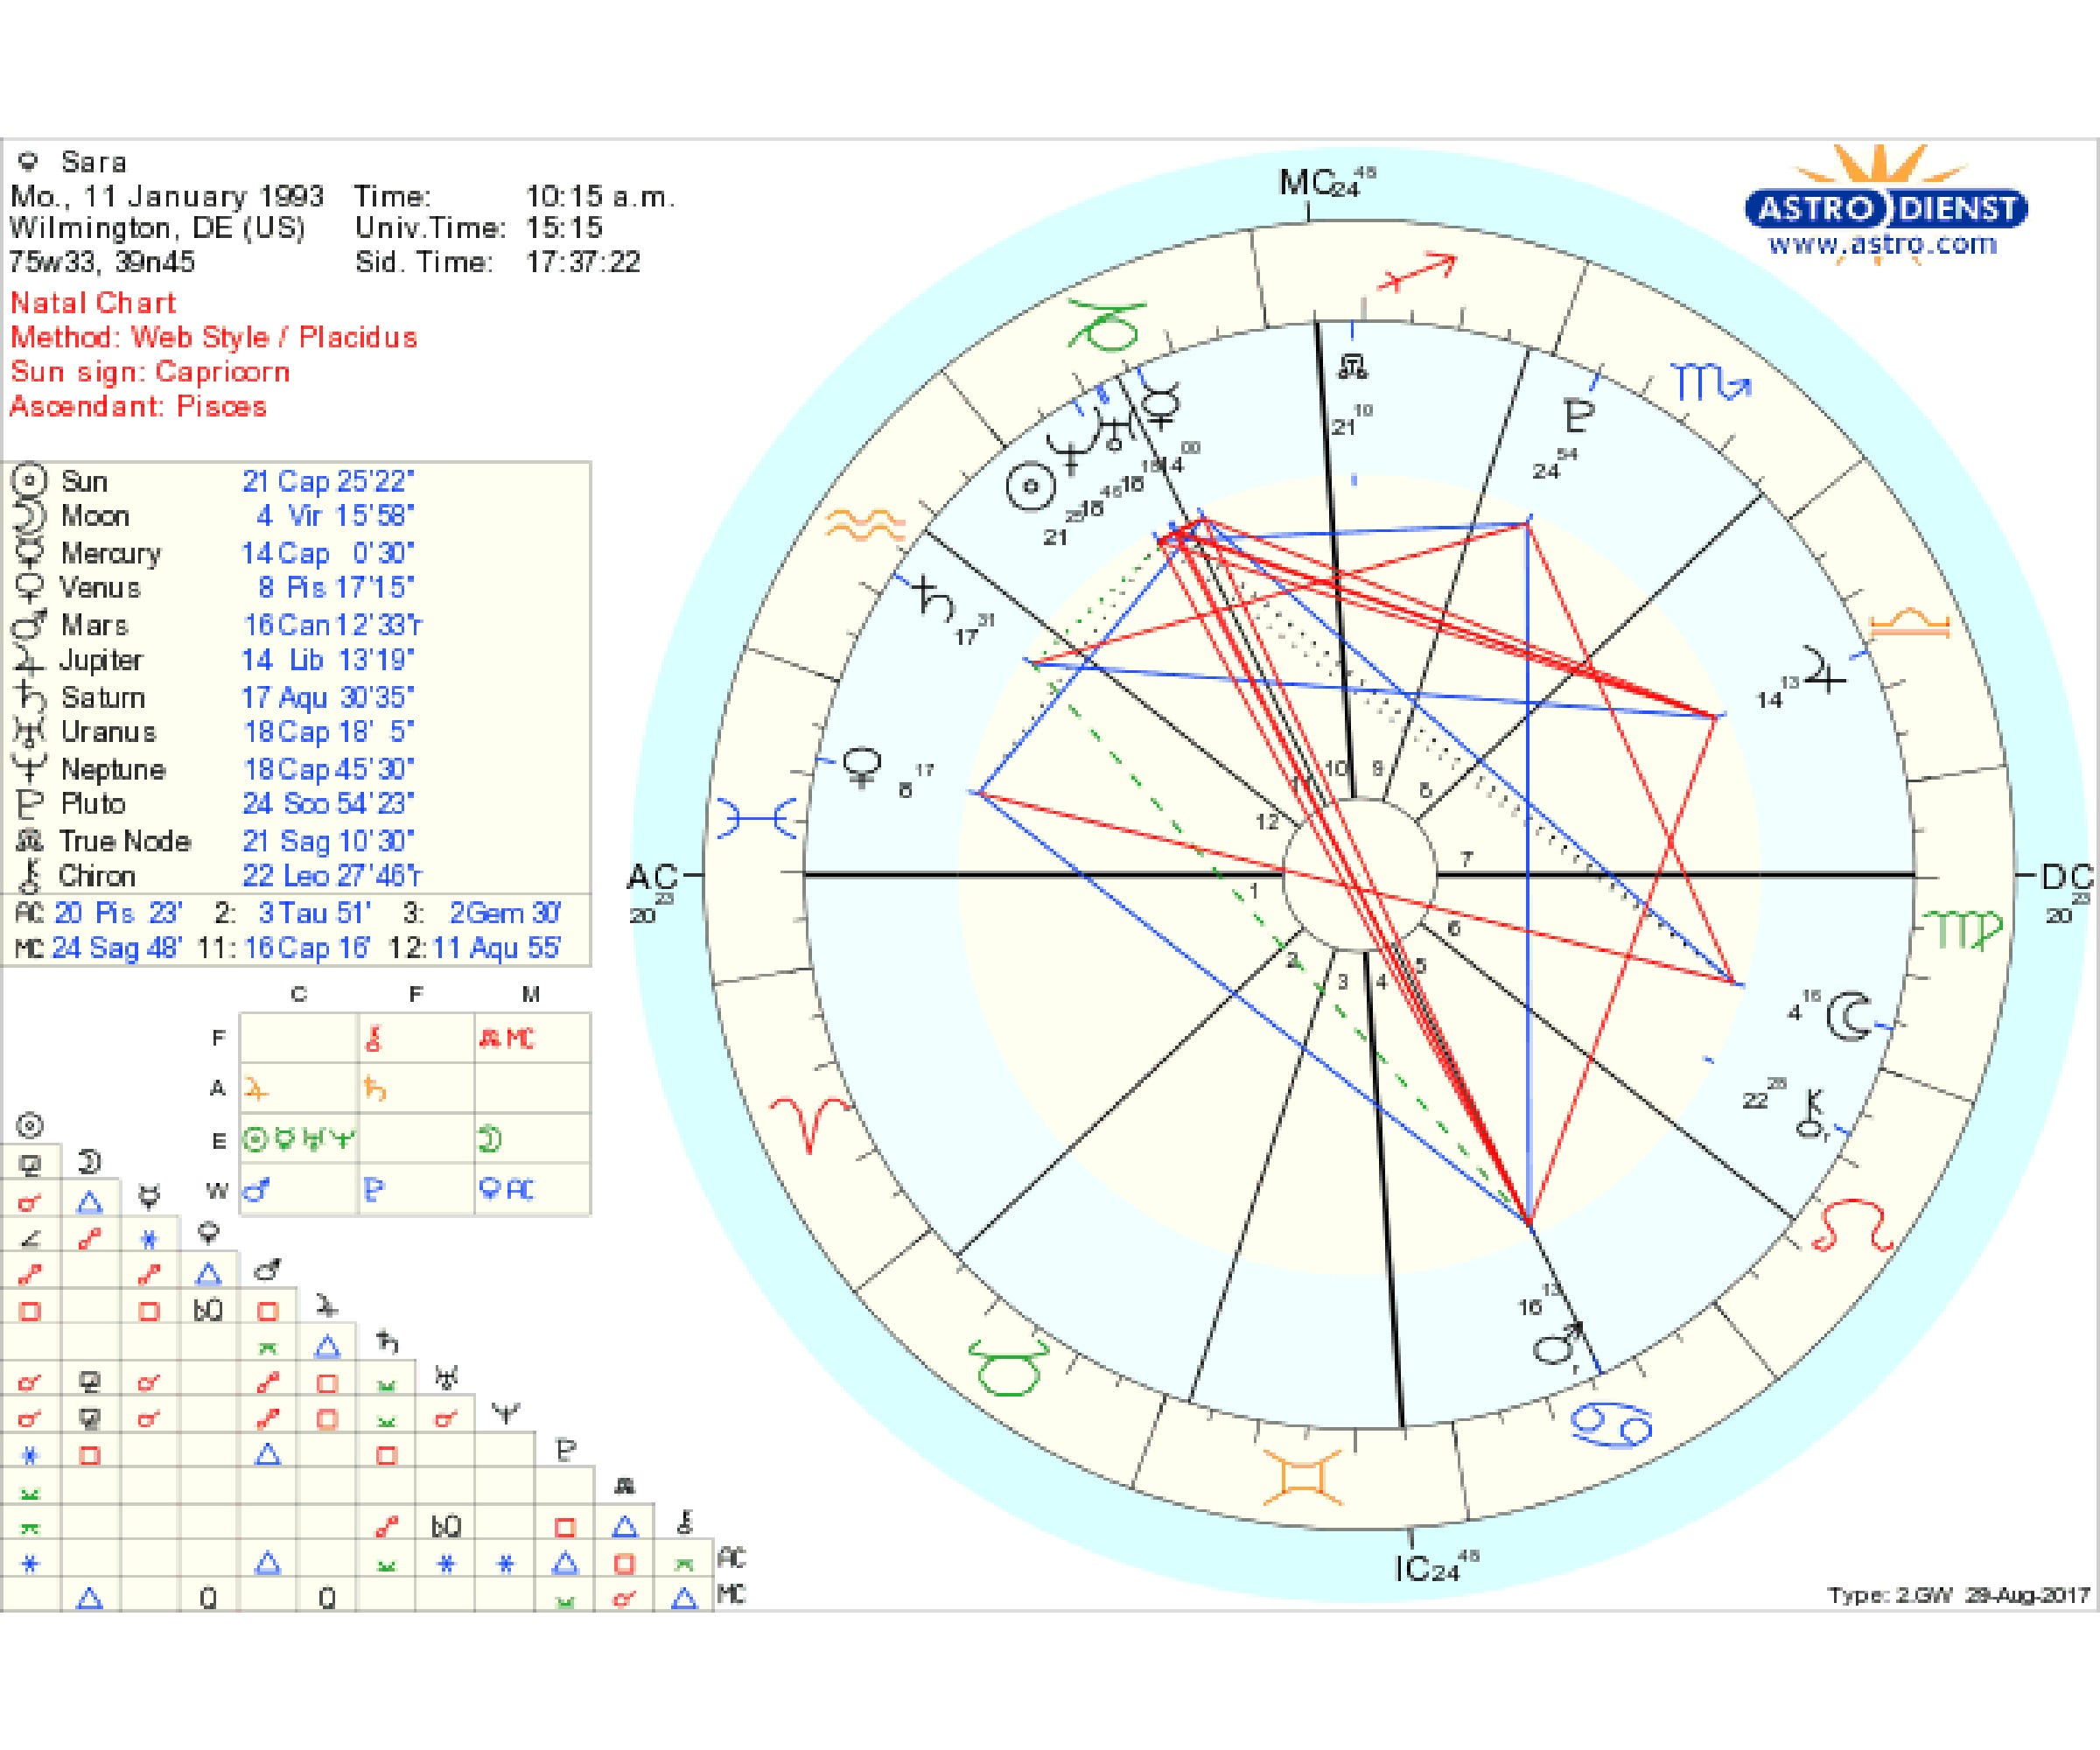 Professional astrologers read my natal birth chart nvjuhfo Choice Image